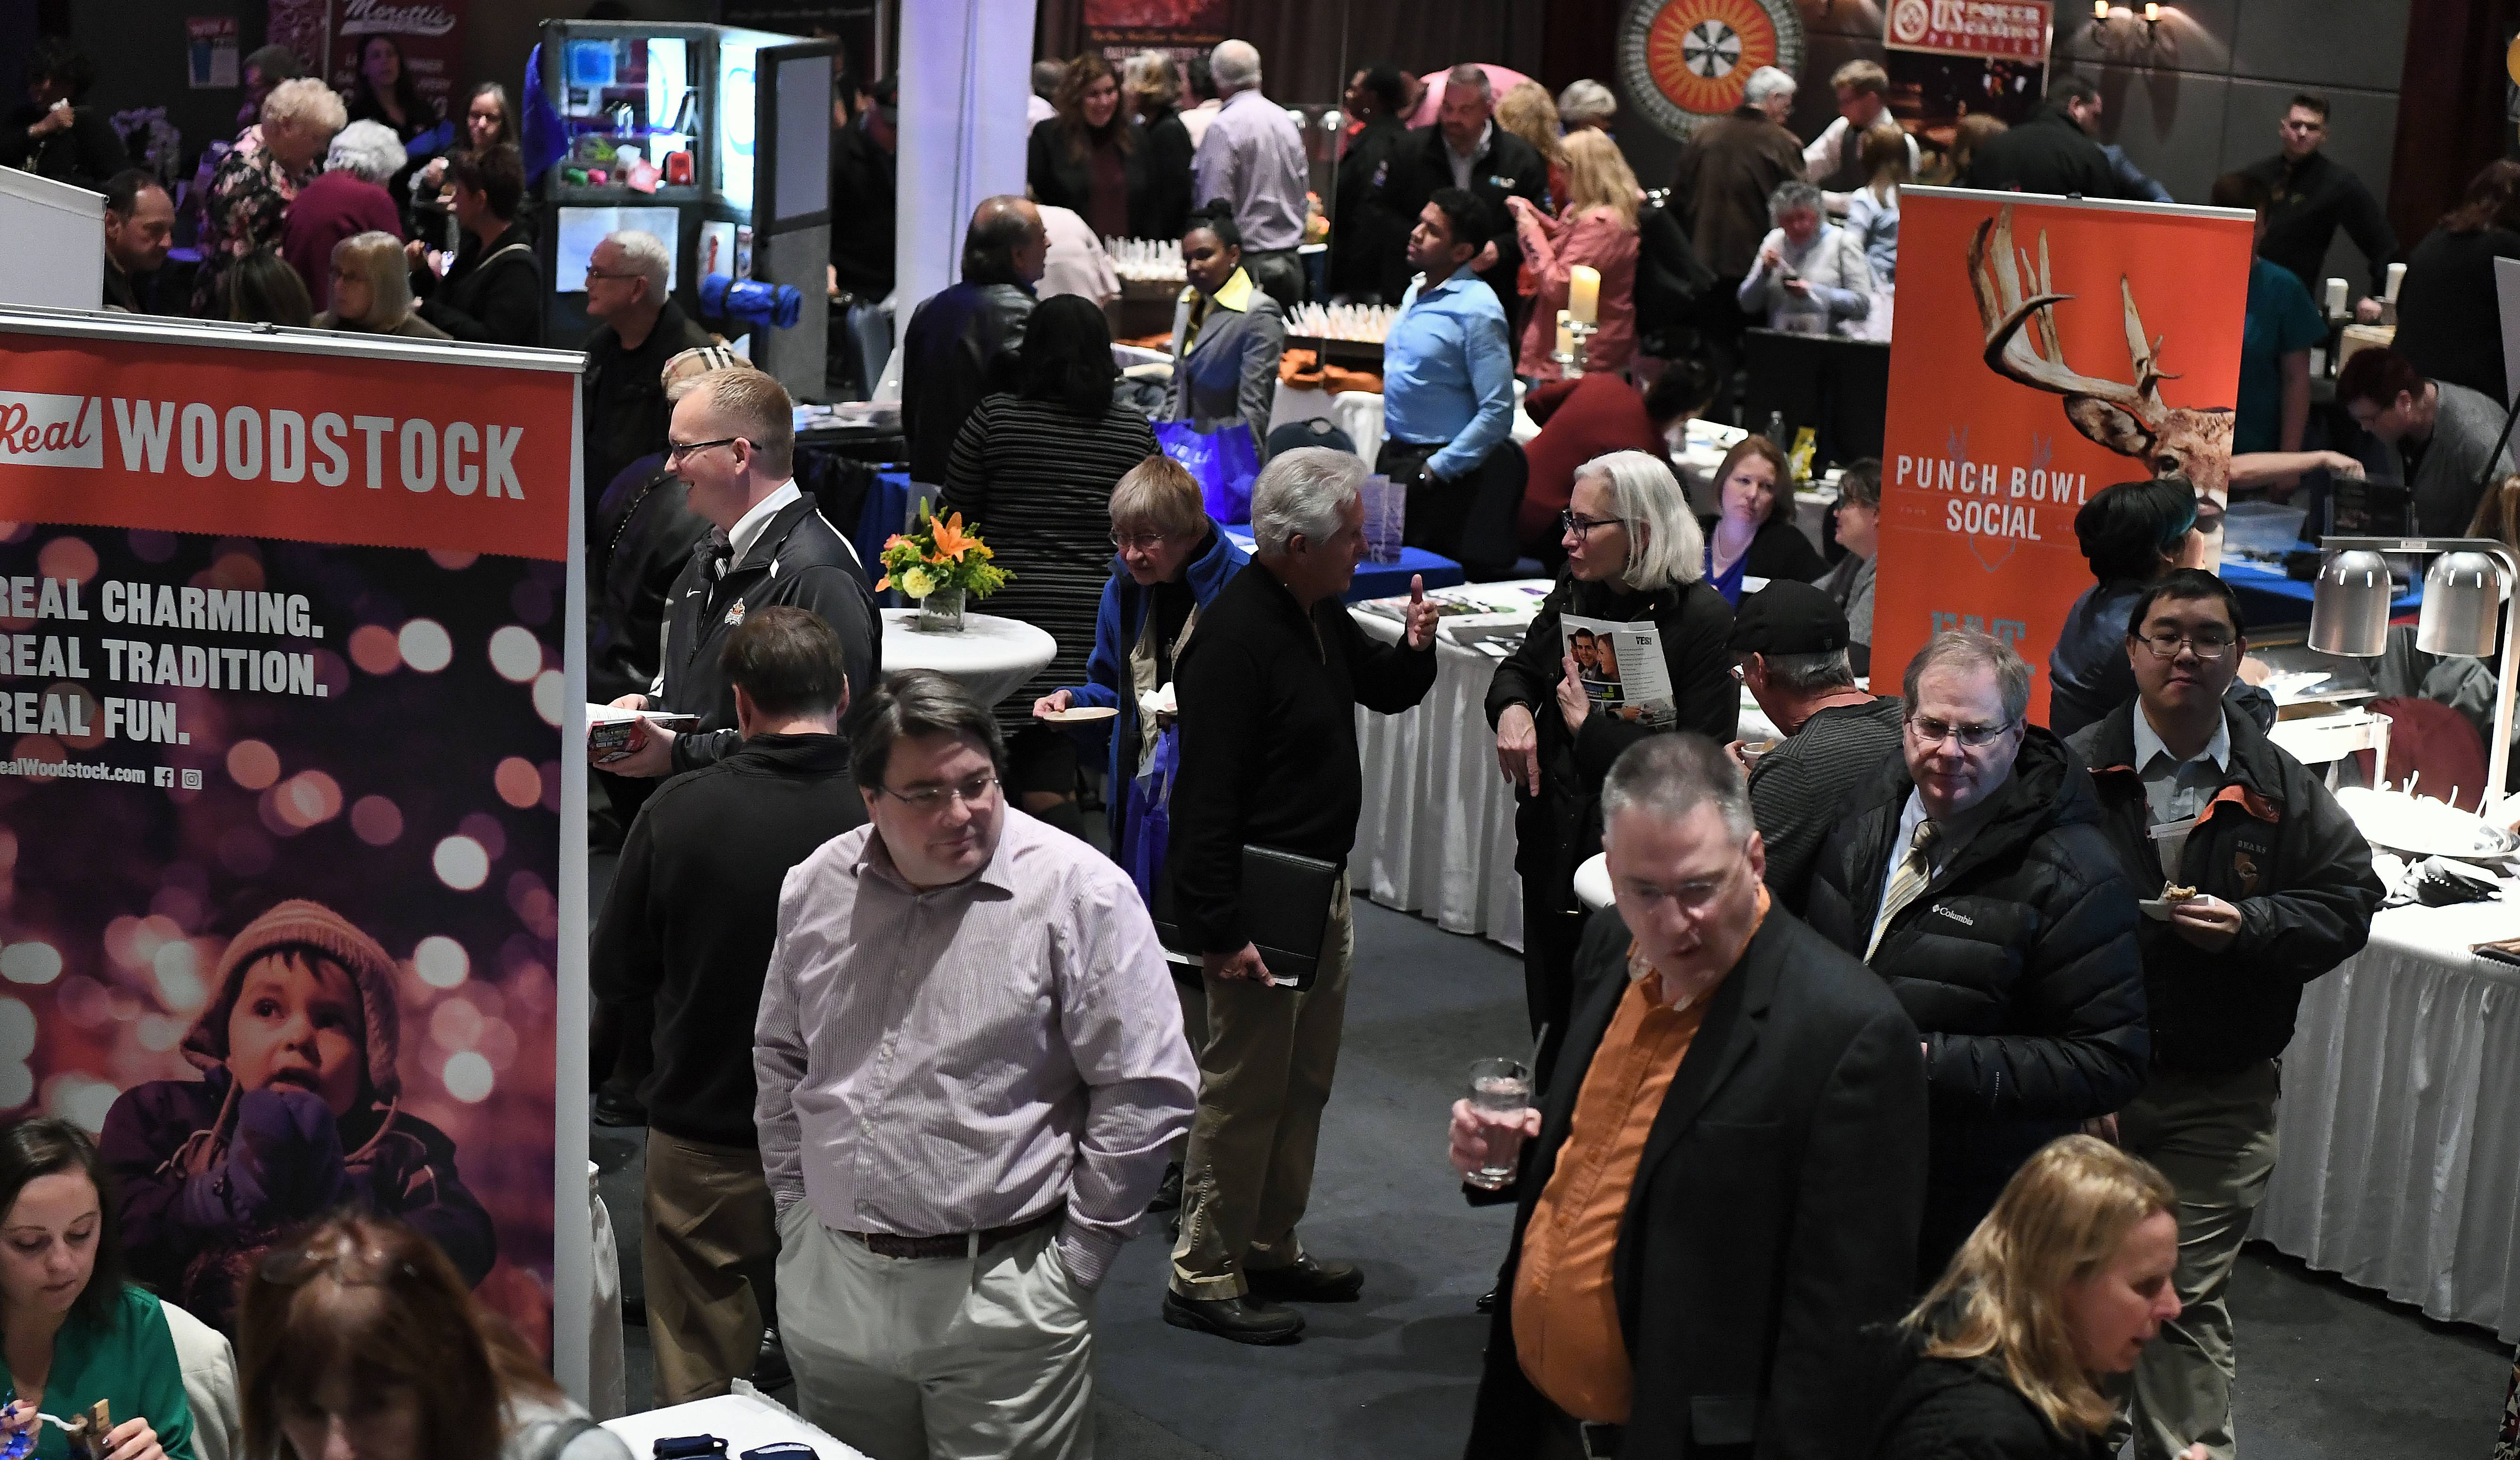 Mark Welsh/mwelsh@dailyherald.comFull house of business people at the Daily Herald Business Ledger Hospitality Expo Northwest in Hoffman Estates on Thursday.